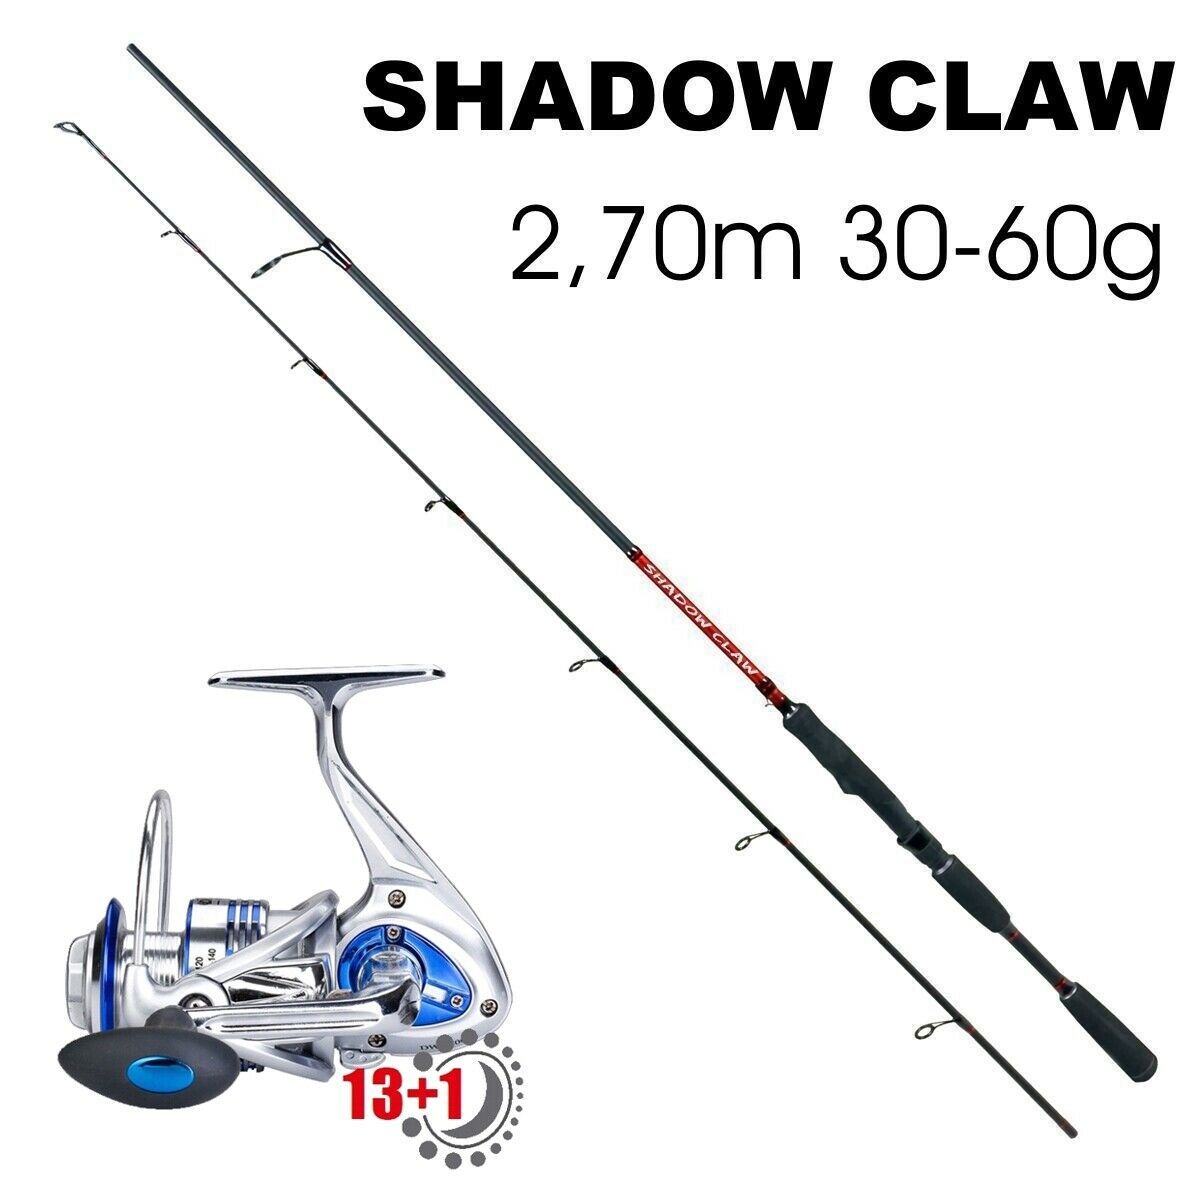 Spin set Shadow Claw 18 2,70m Zander Hecht + 3000er papel de metal